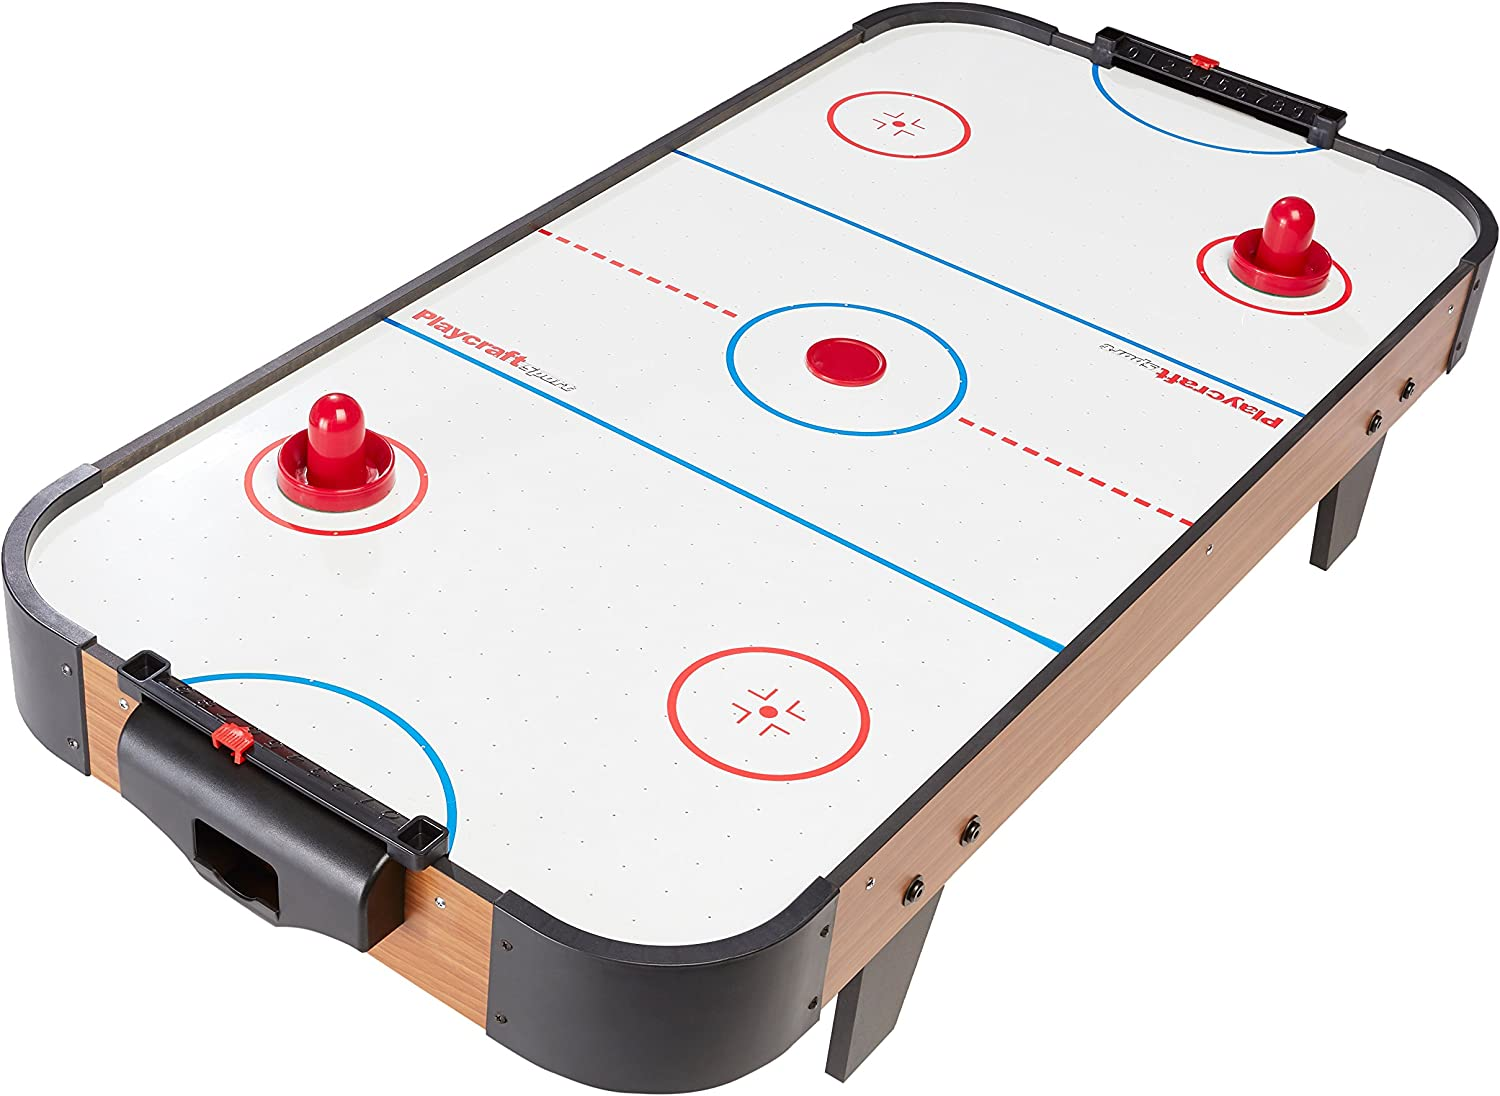 Top 10 Best Air Hockey Table for Kids (2020 Reviews & Guide) 8